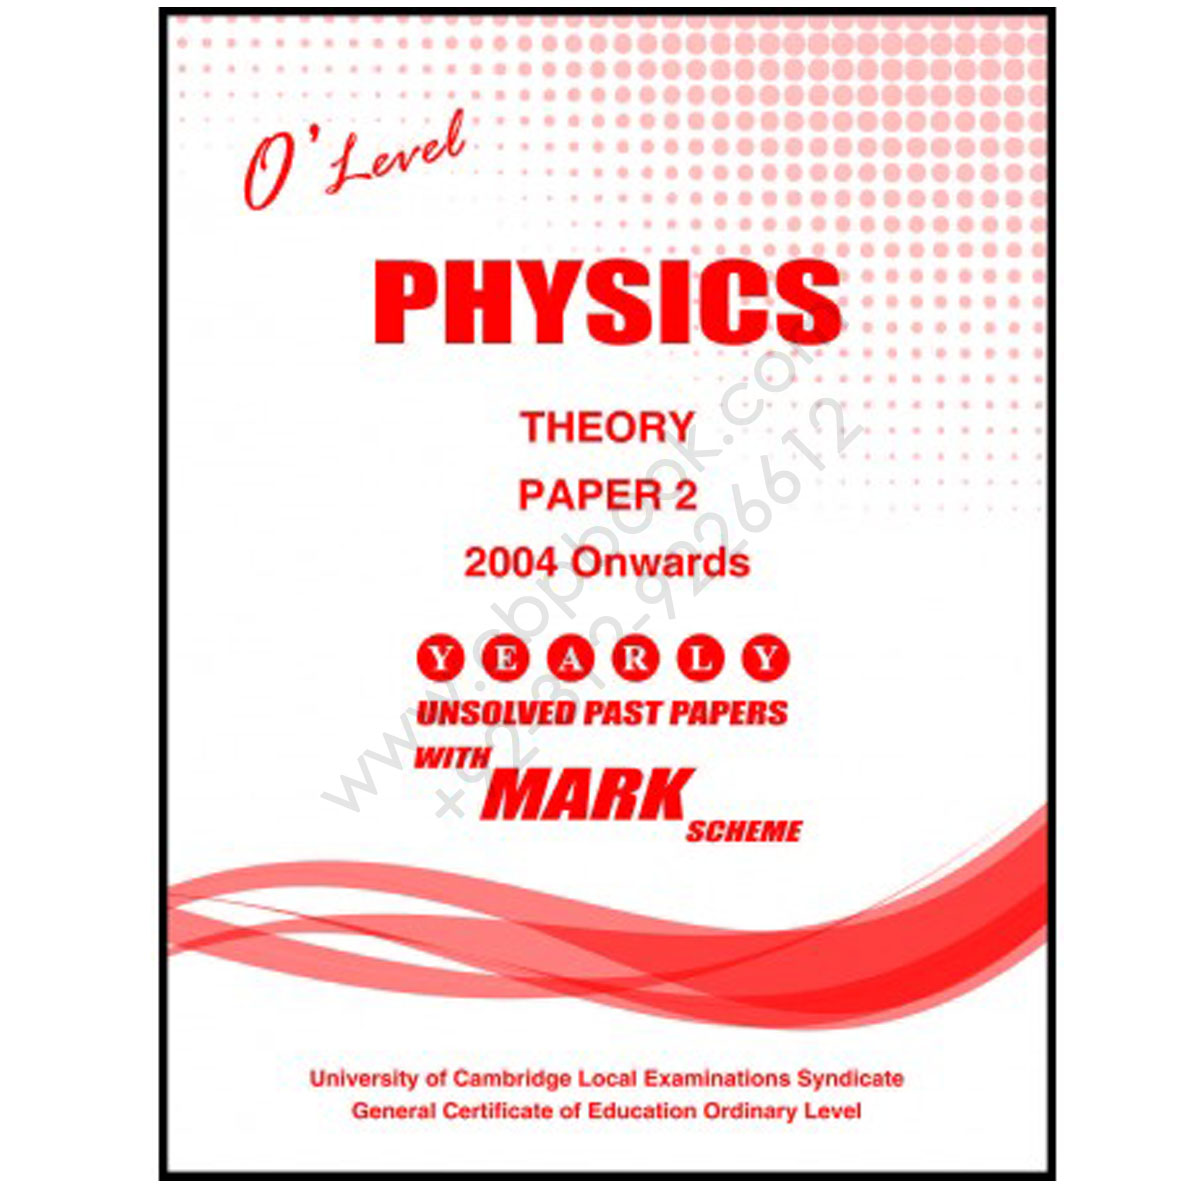 O Level PHYSICS Paper 2 Yearly Unsolved with Mark Scheme (2010 - Nov 2018)